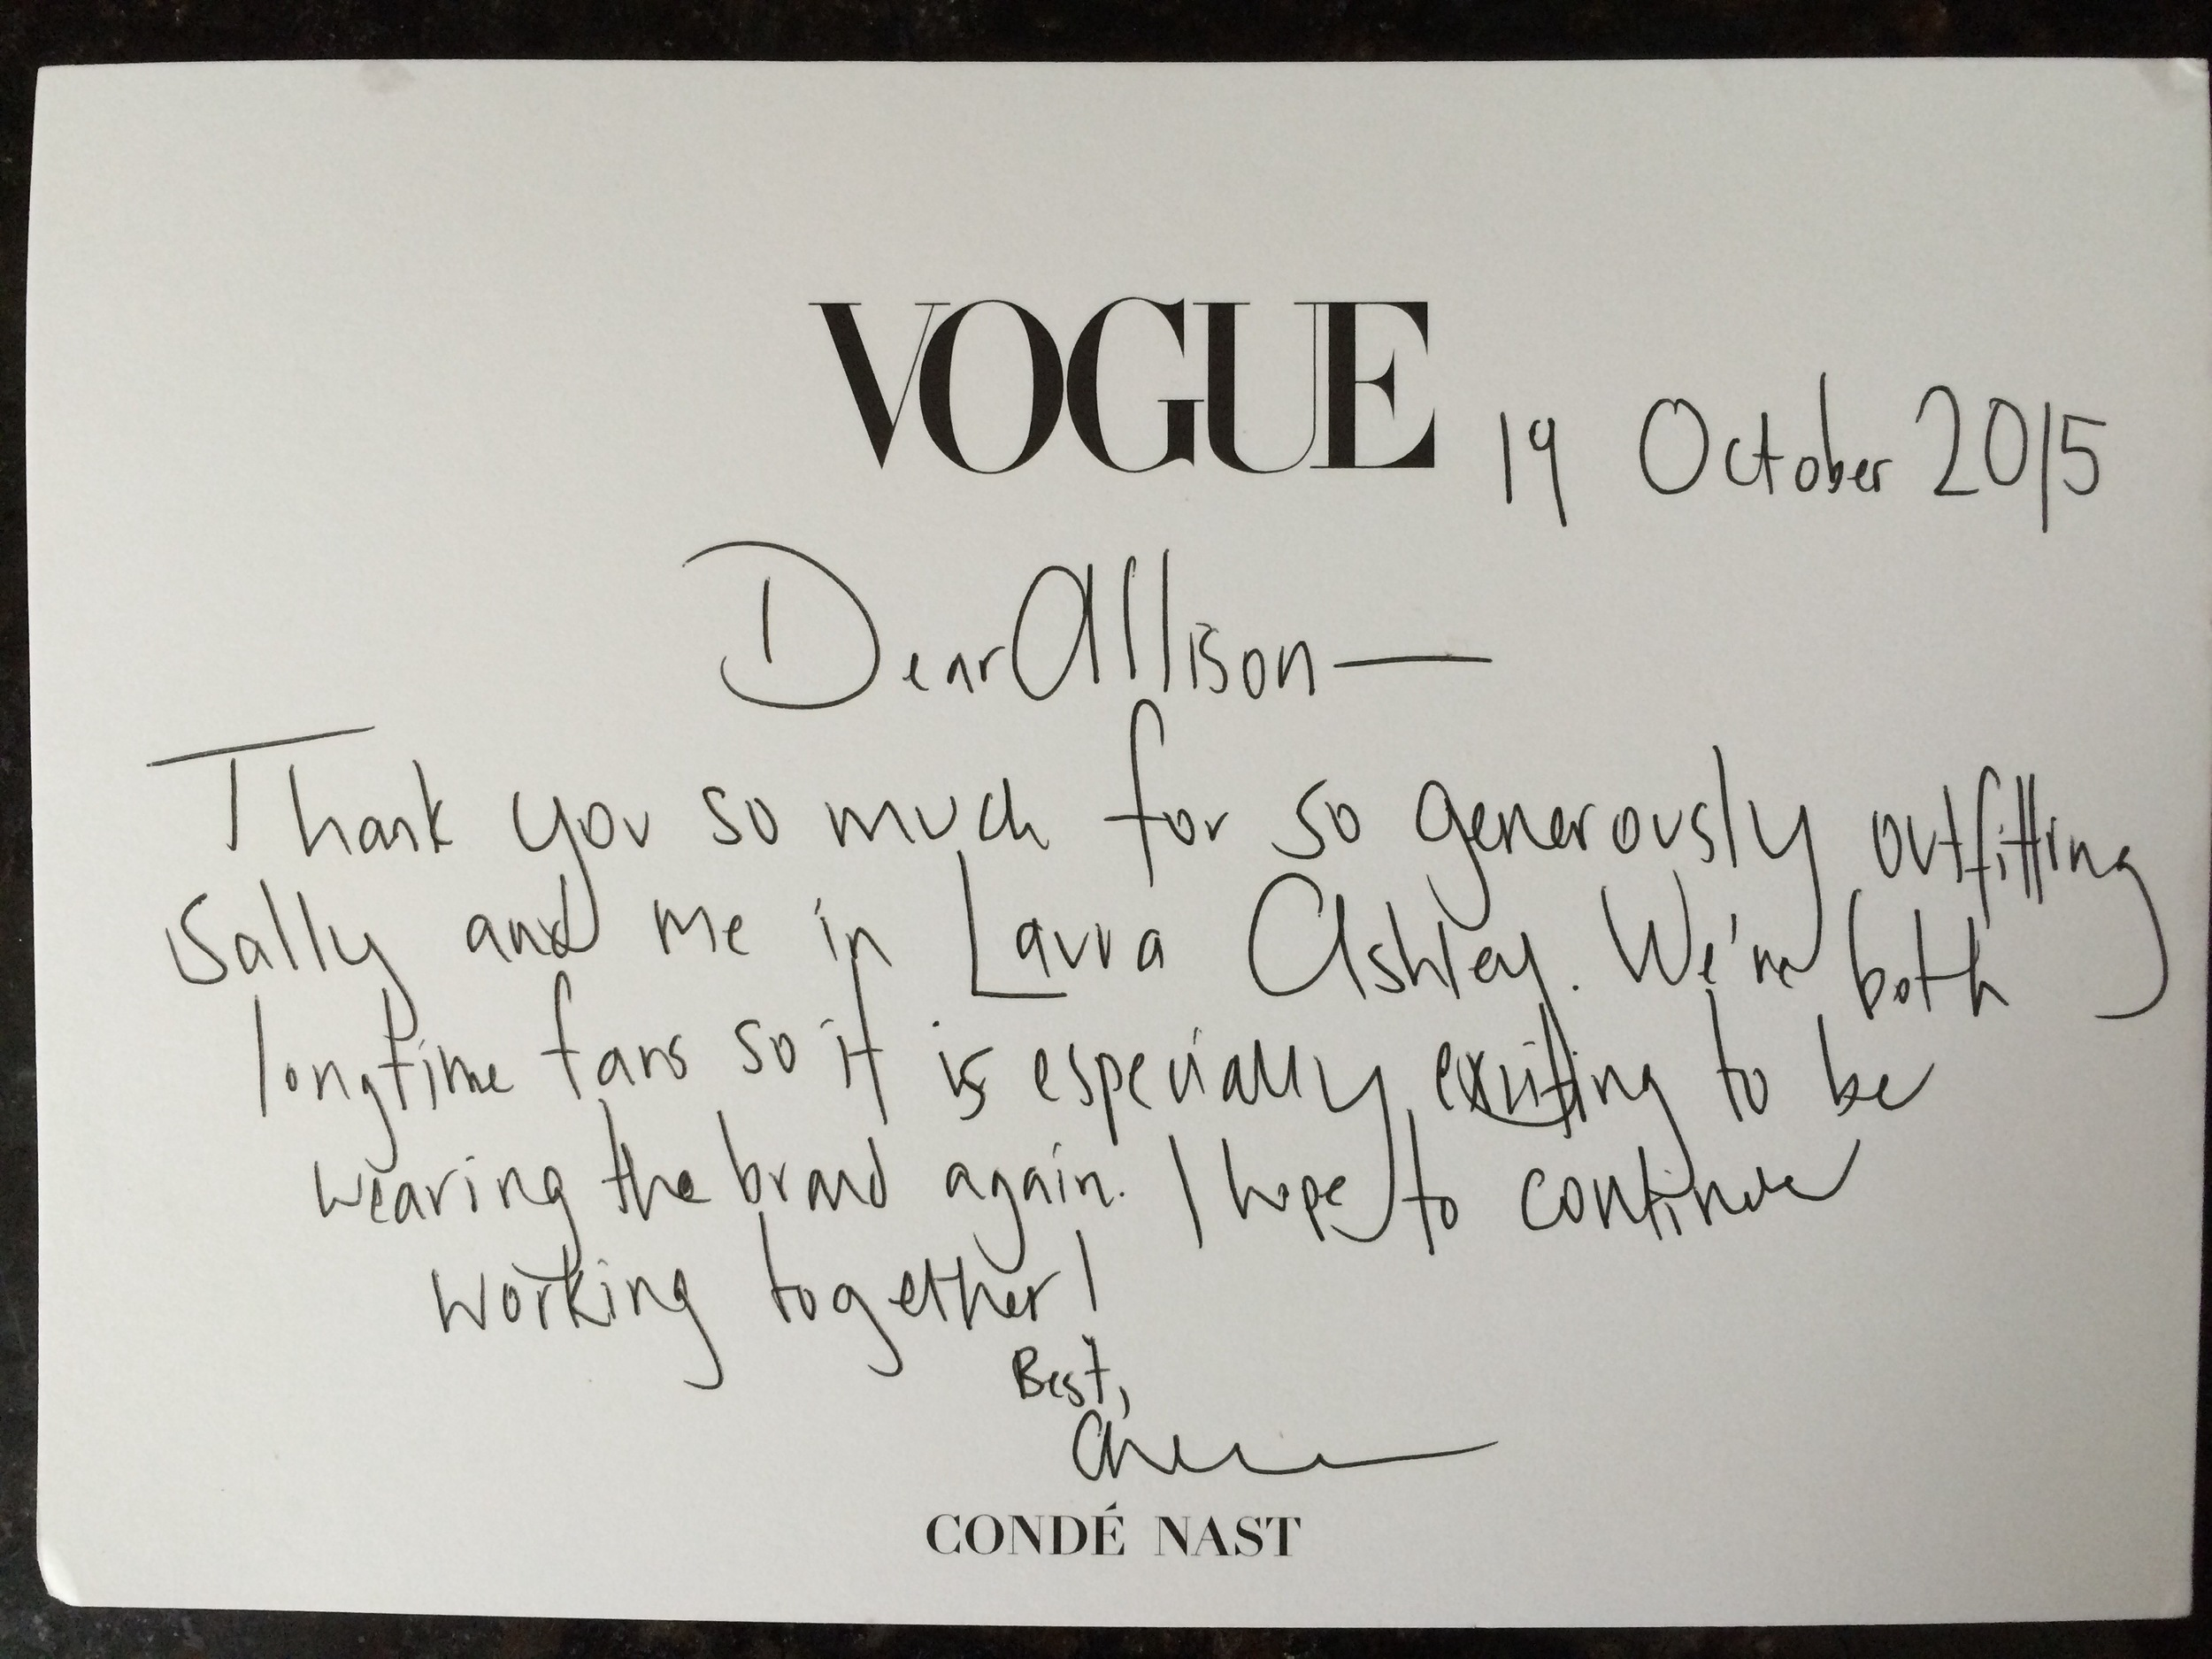 From Vogue